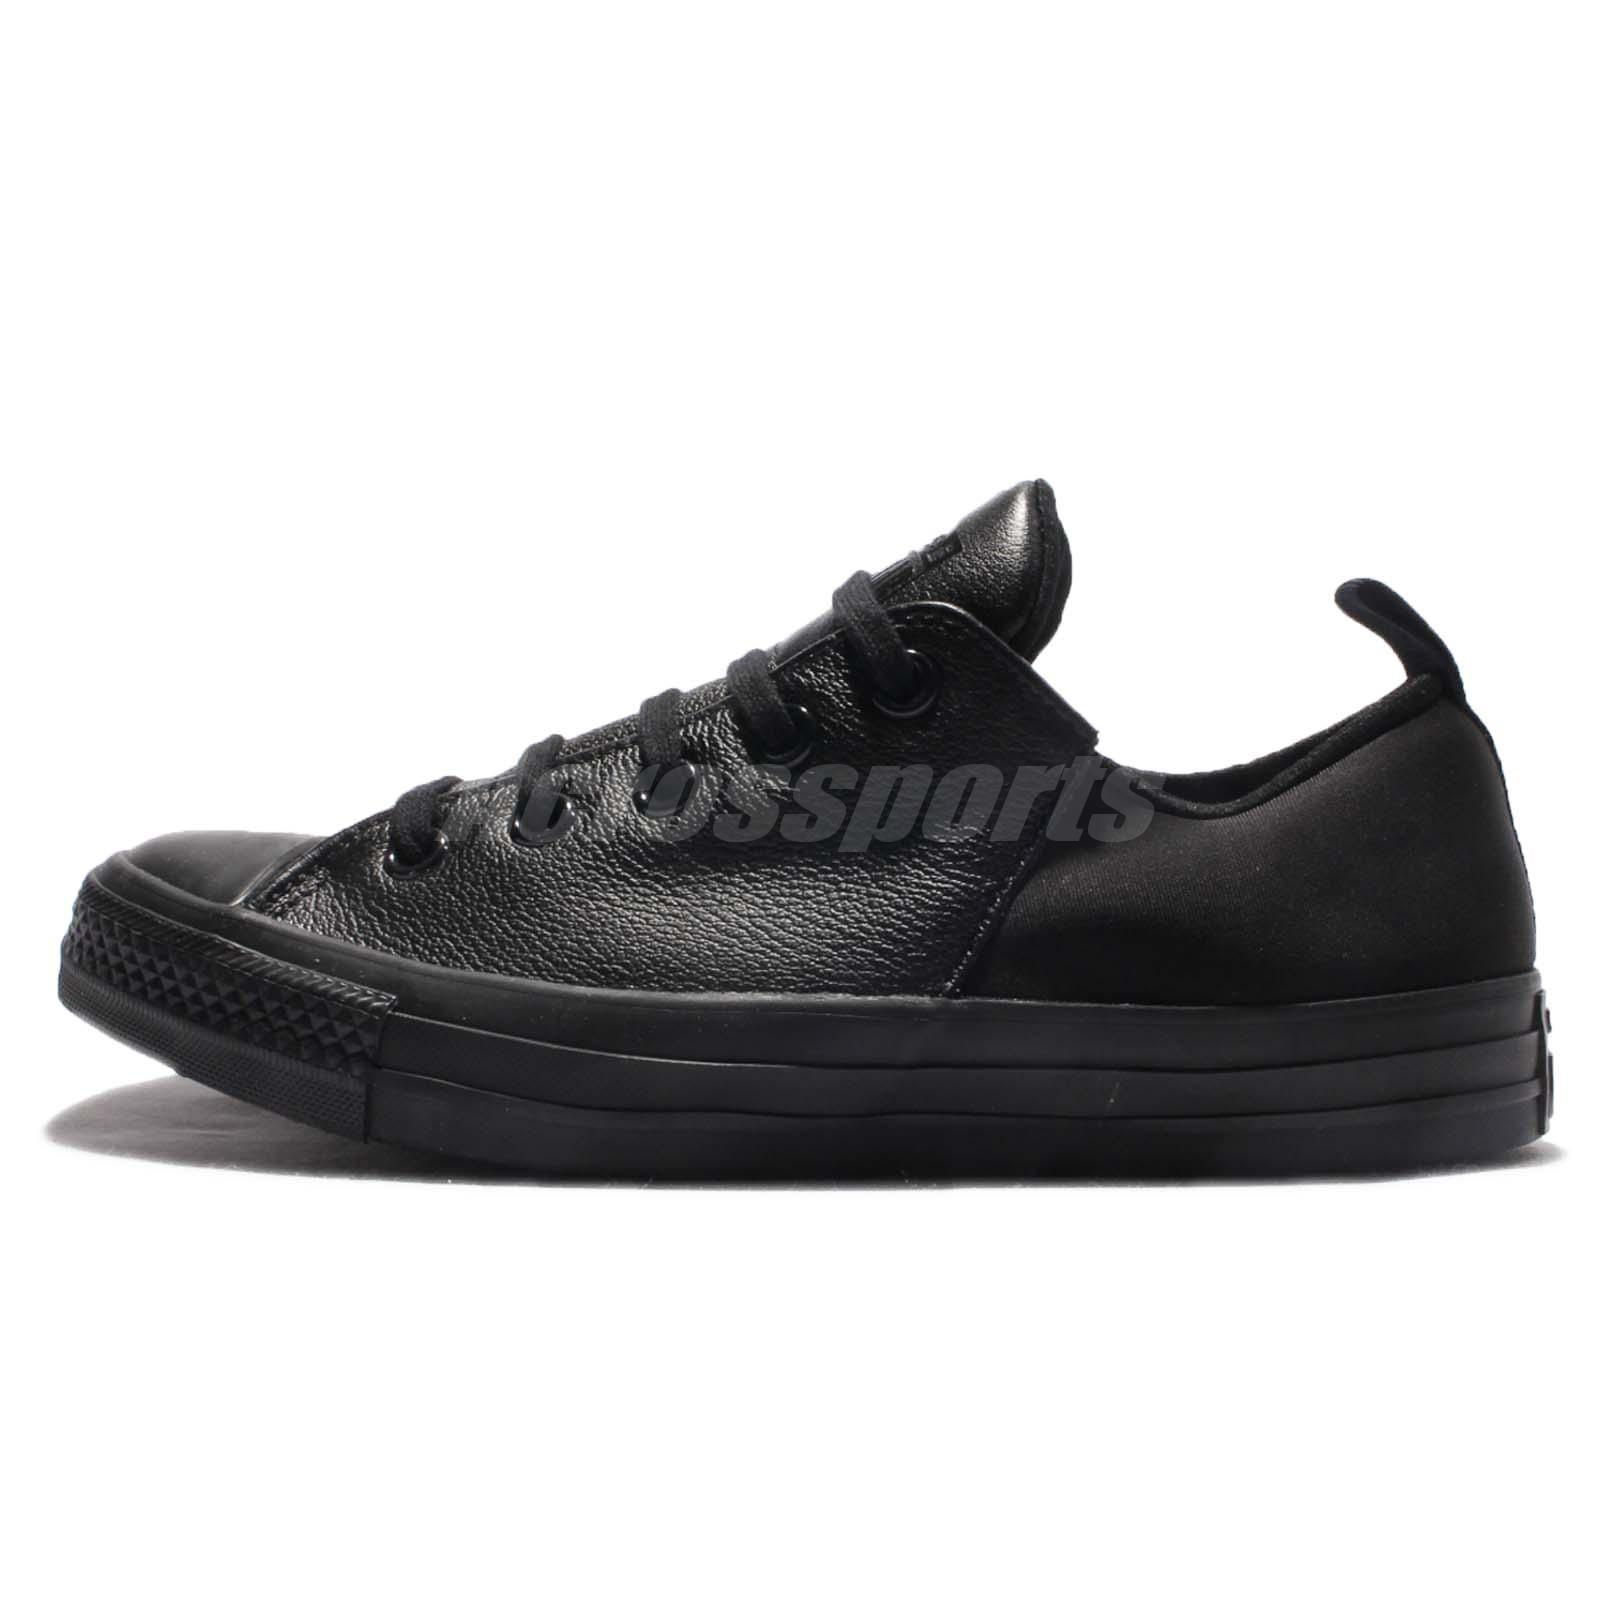 1b622808552b Converse Chuck Taylor All Star Abbey Monochrome Leather Black Women Shoe  553380C